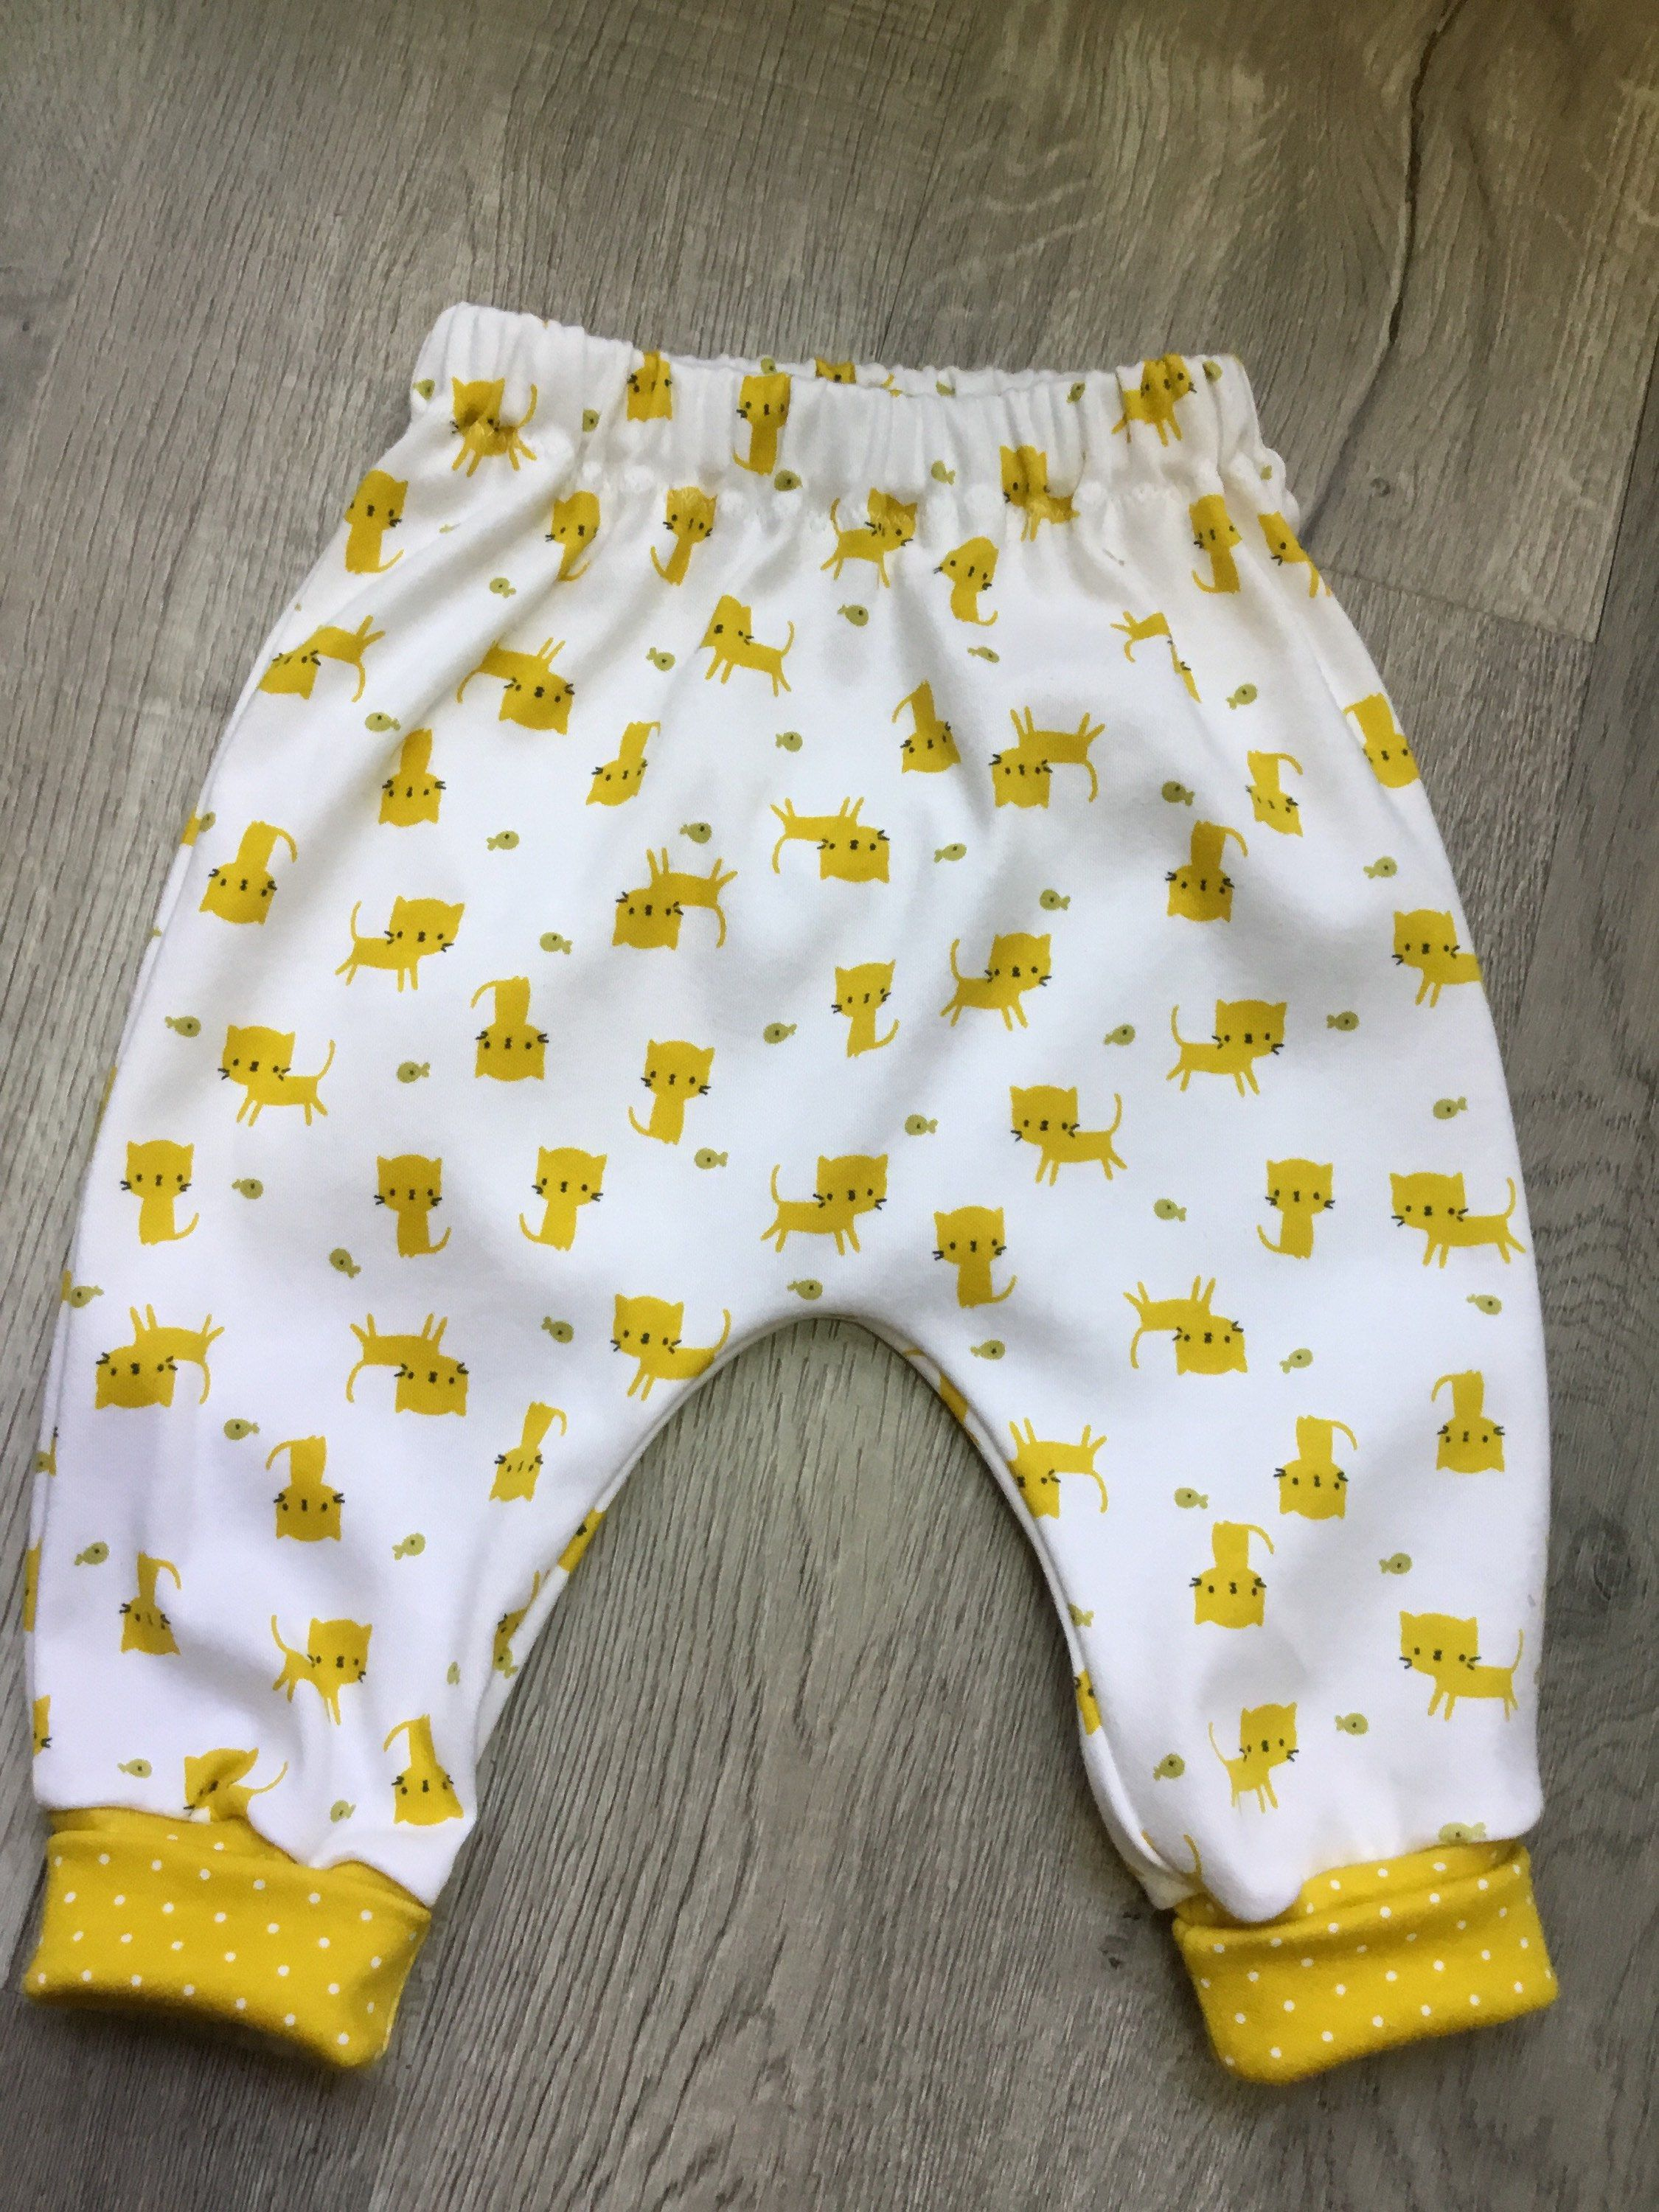 Organic Cotton Pants Baby Harem Pants Modern Kids Pants Uni